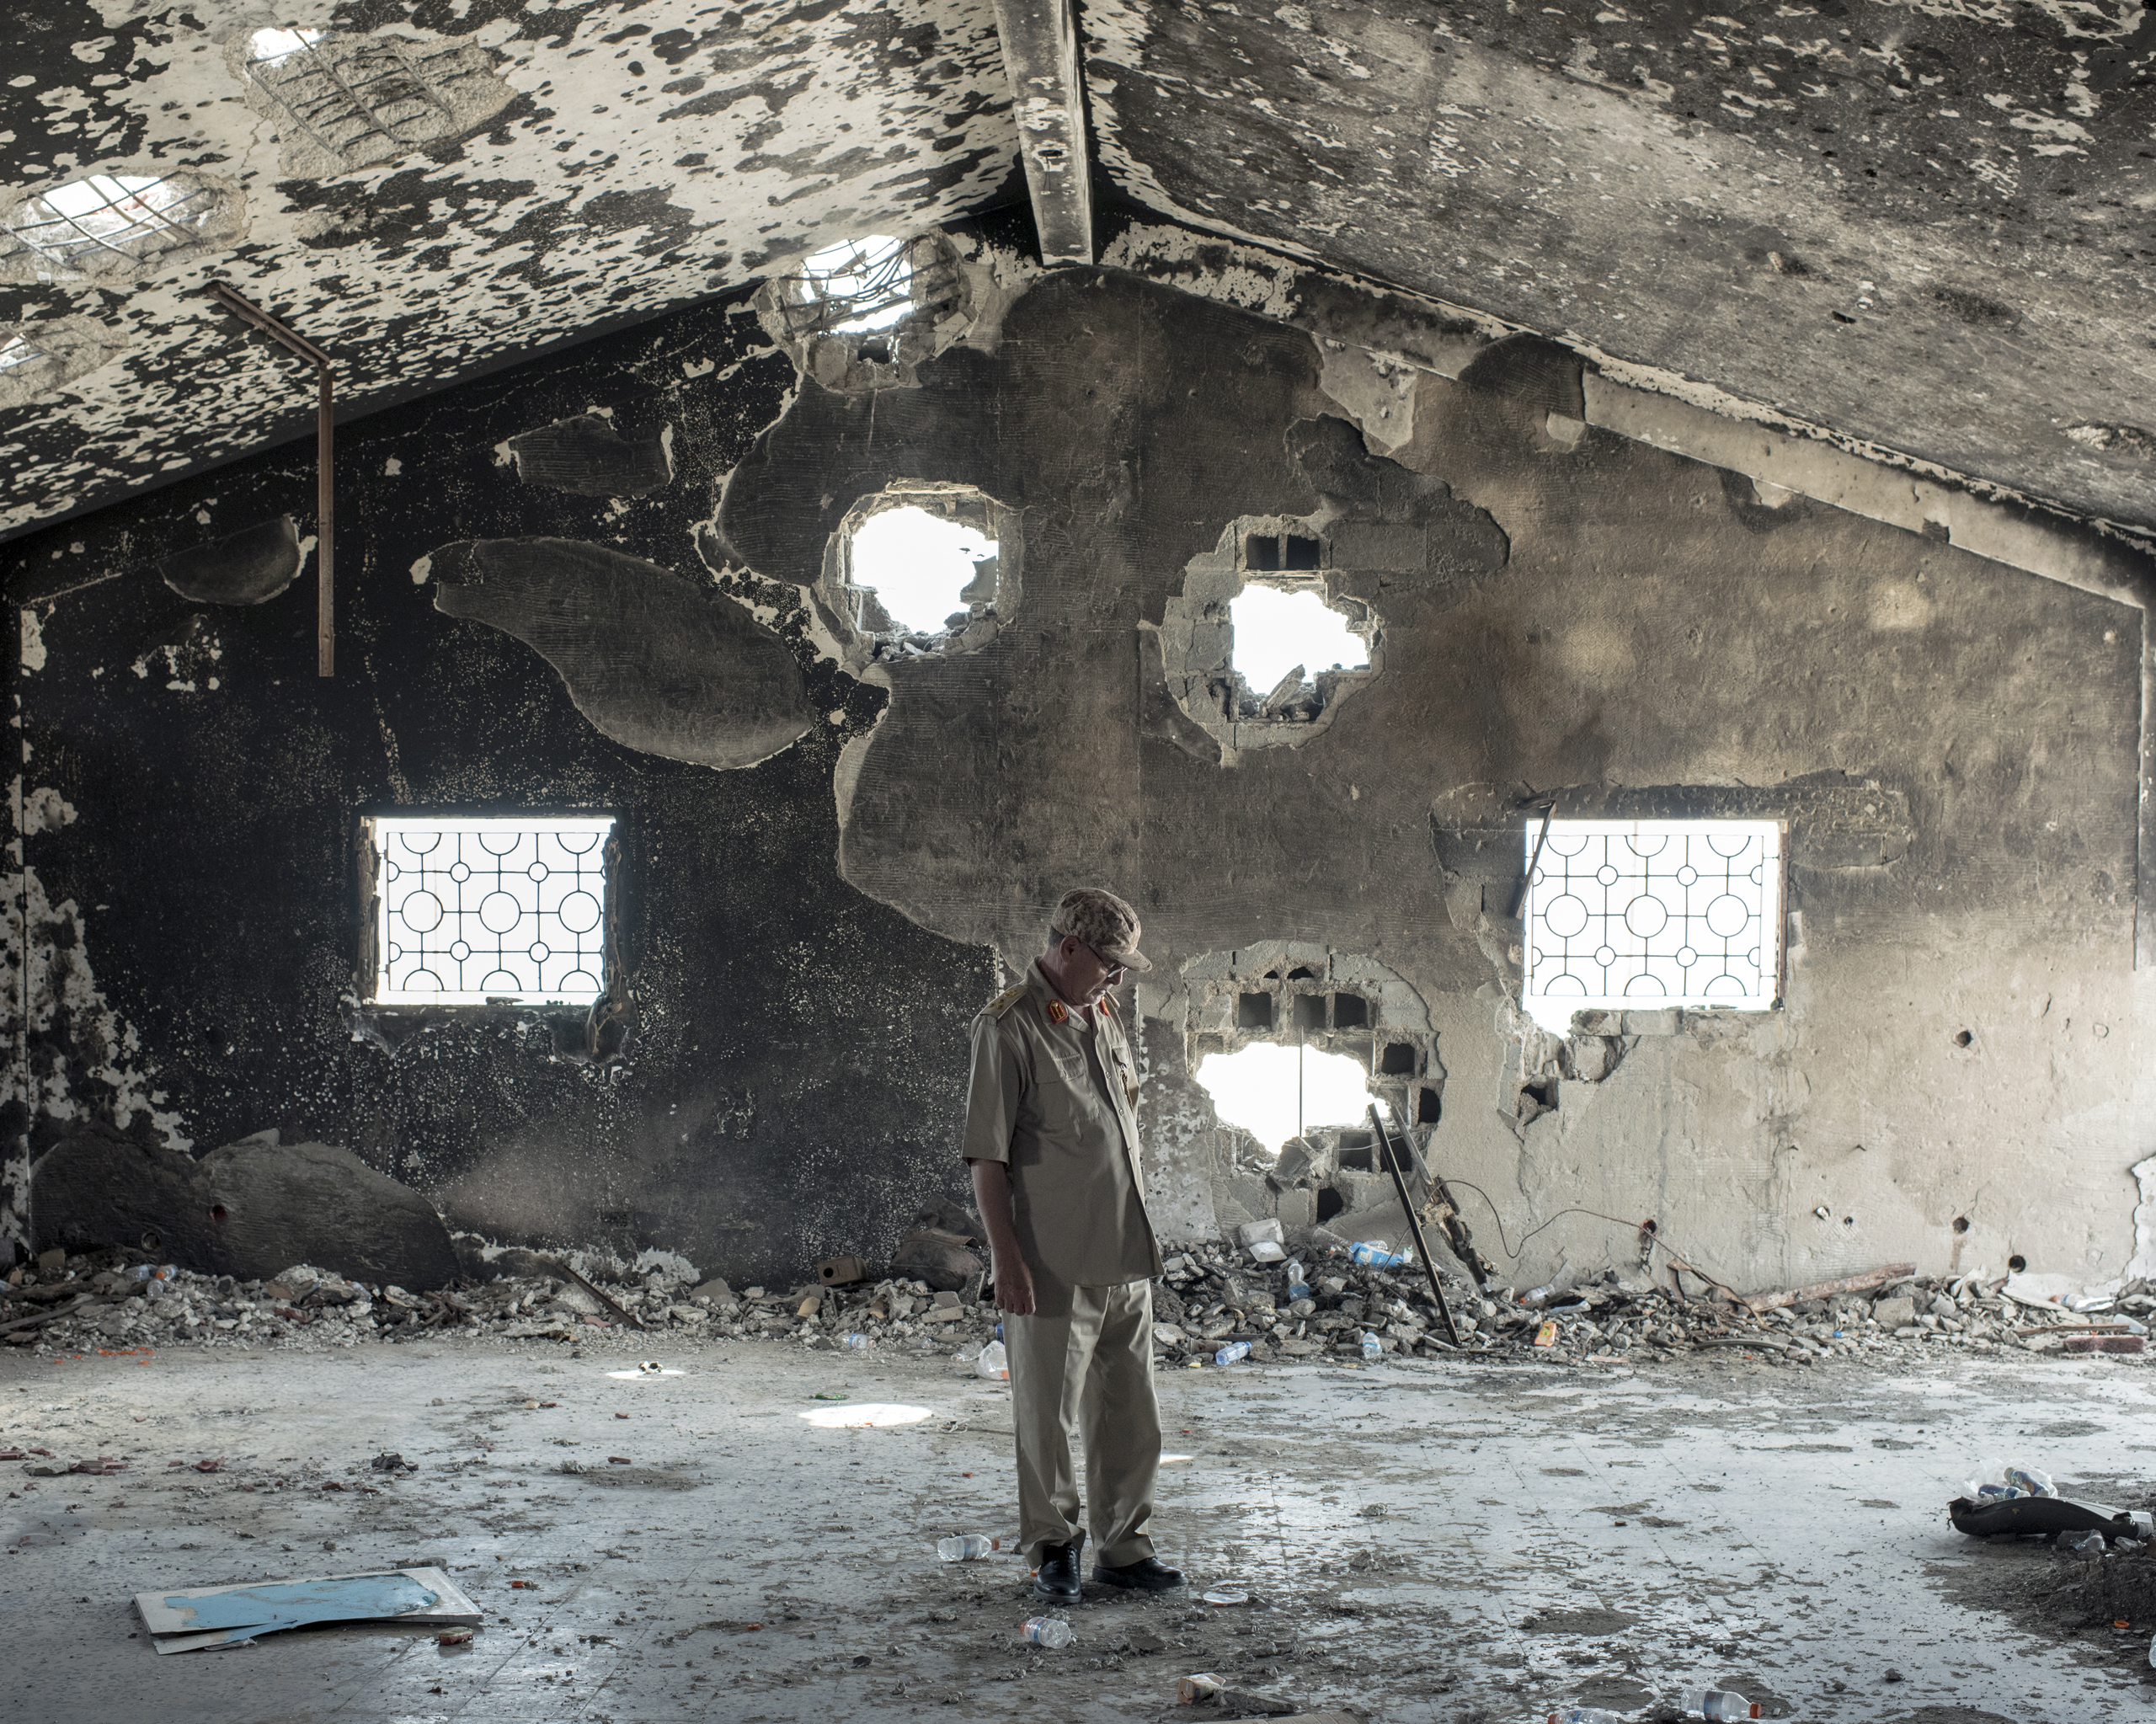 General-Brigadier Mohamed Al-Ghossri surveys the damage from the aftermath of an ISIS suicide bomb on a field hospital, Sirt, Libya, July 2016.